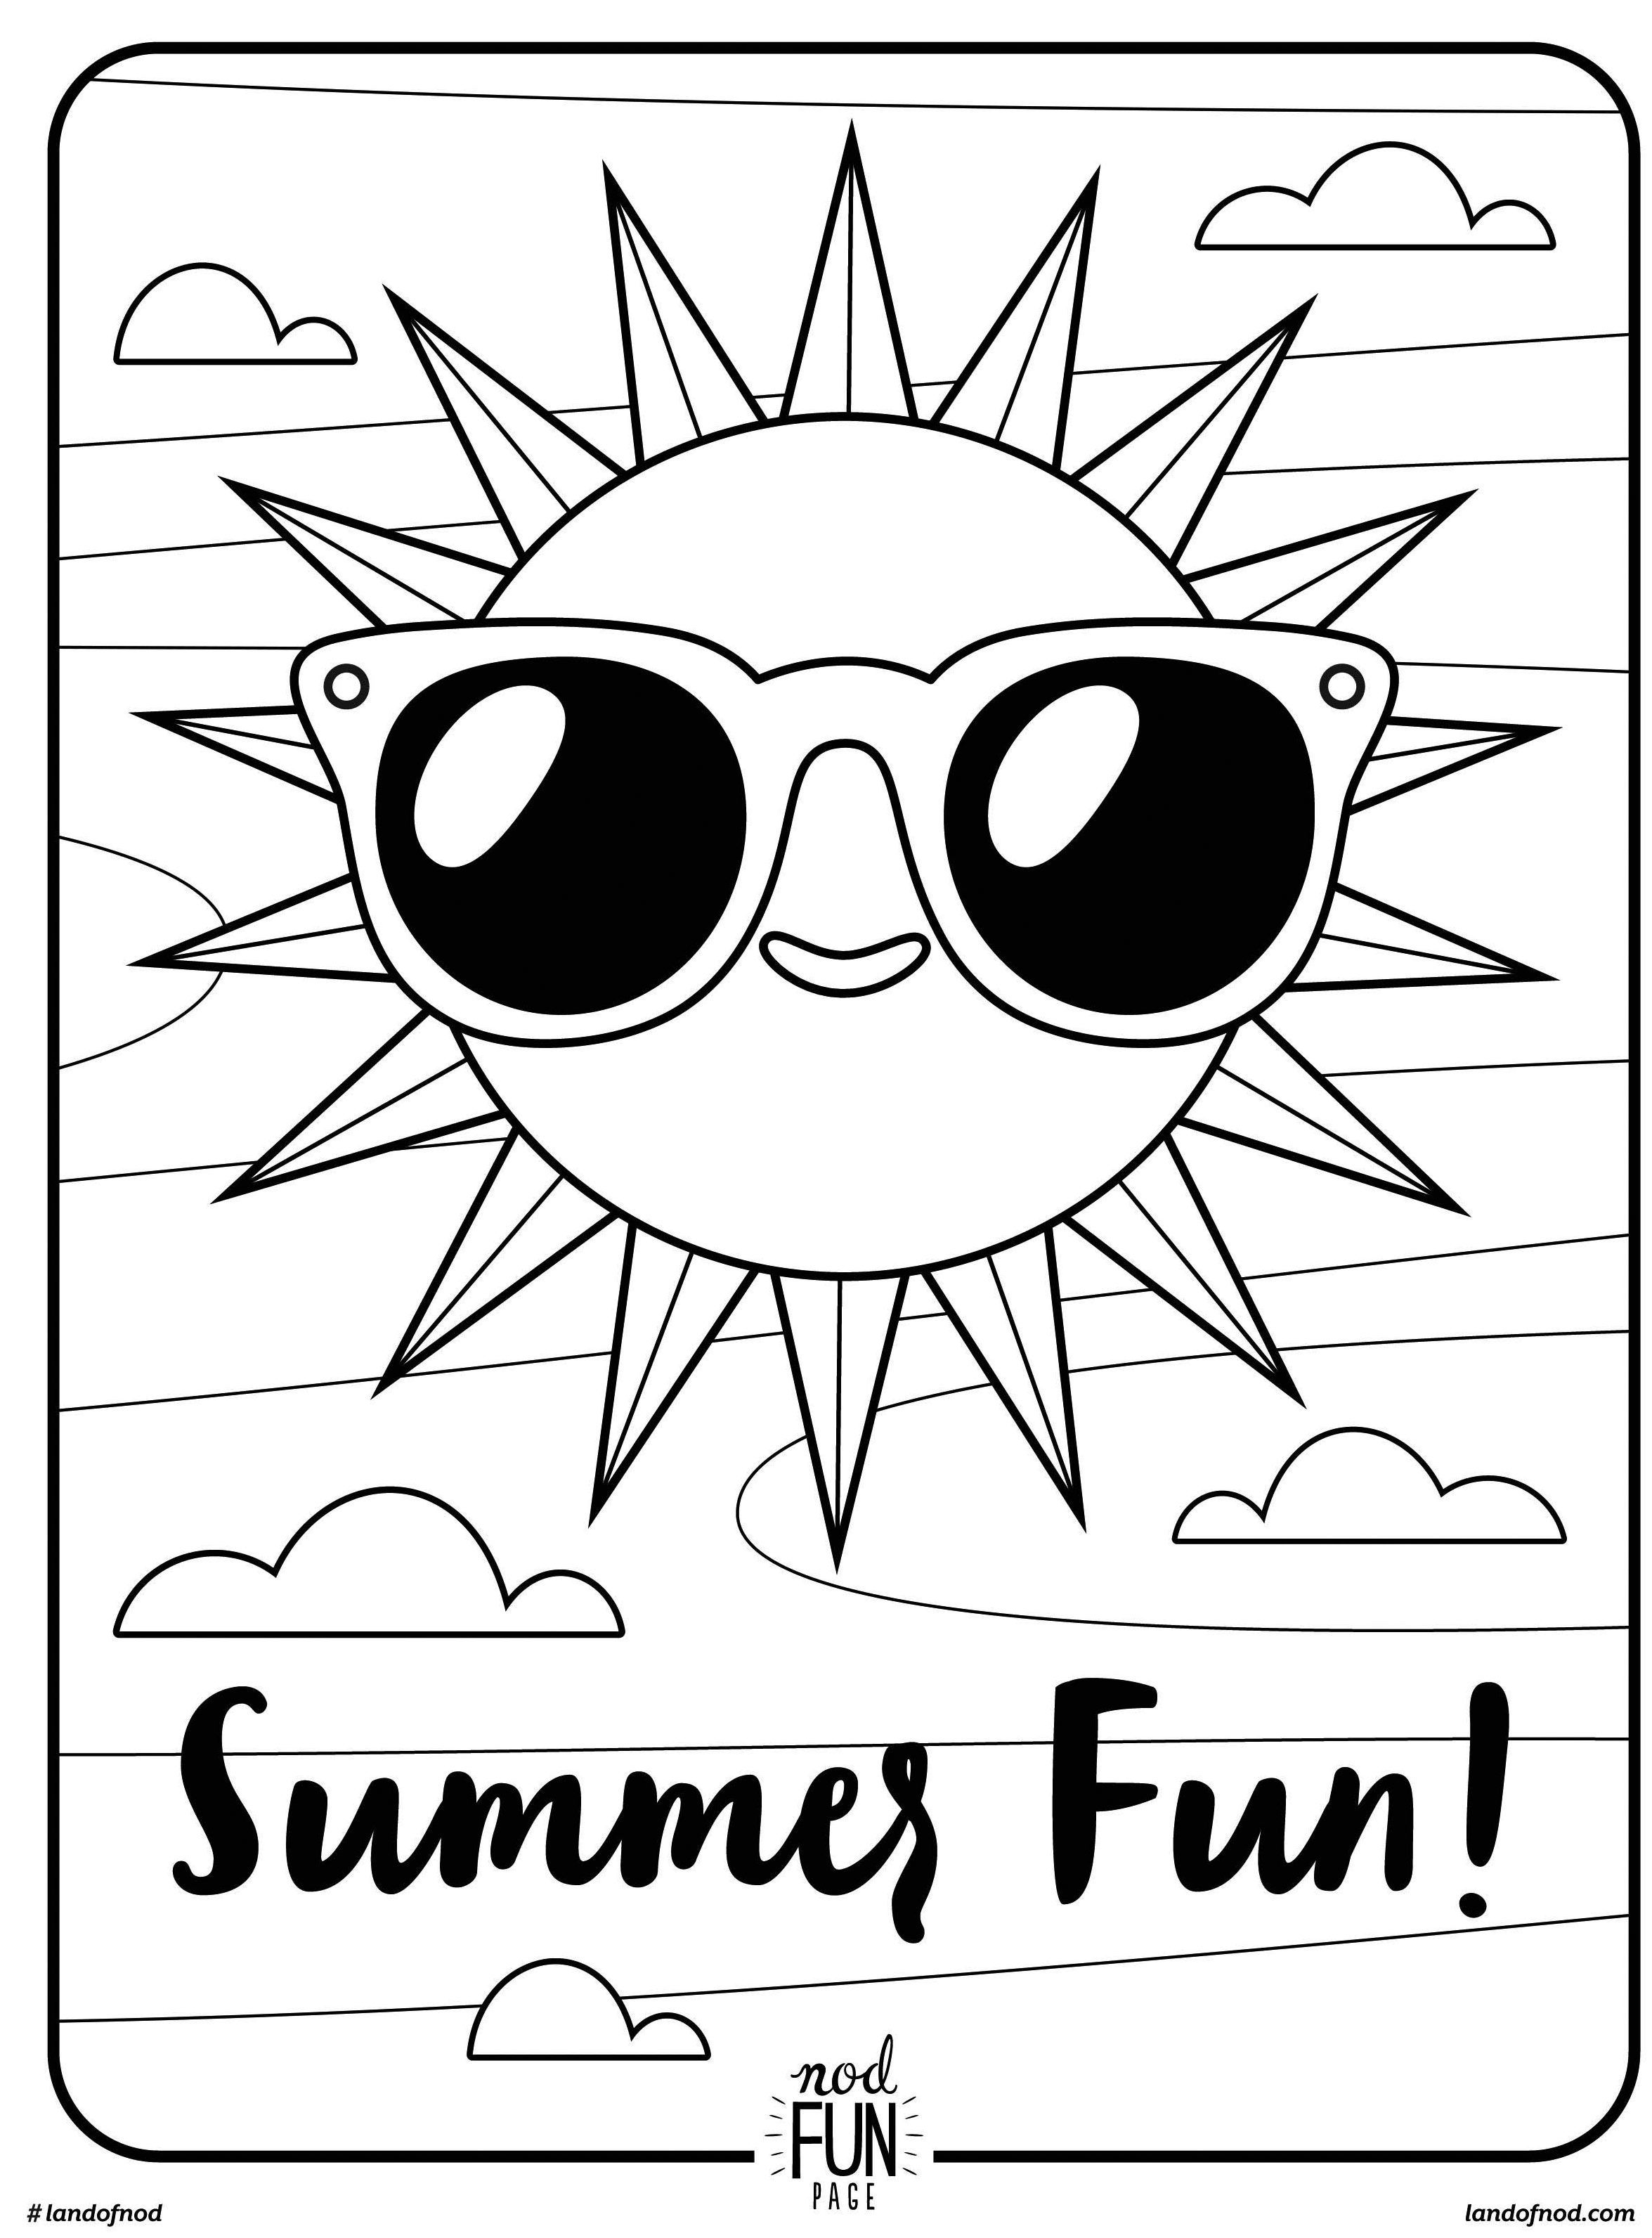 free printable coloring page summer fun - Coloring Pages Kitty Summer